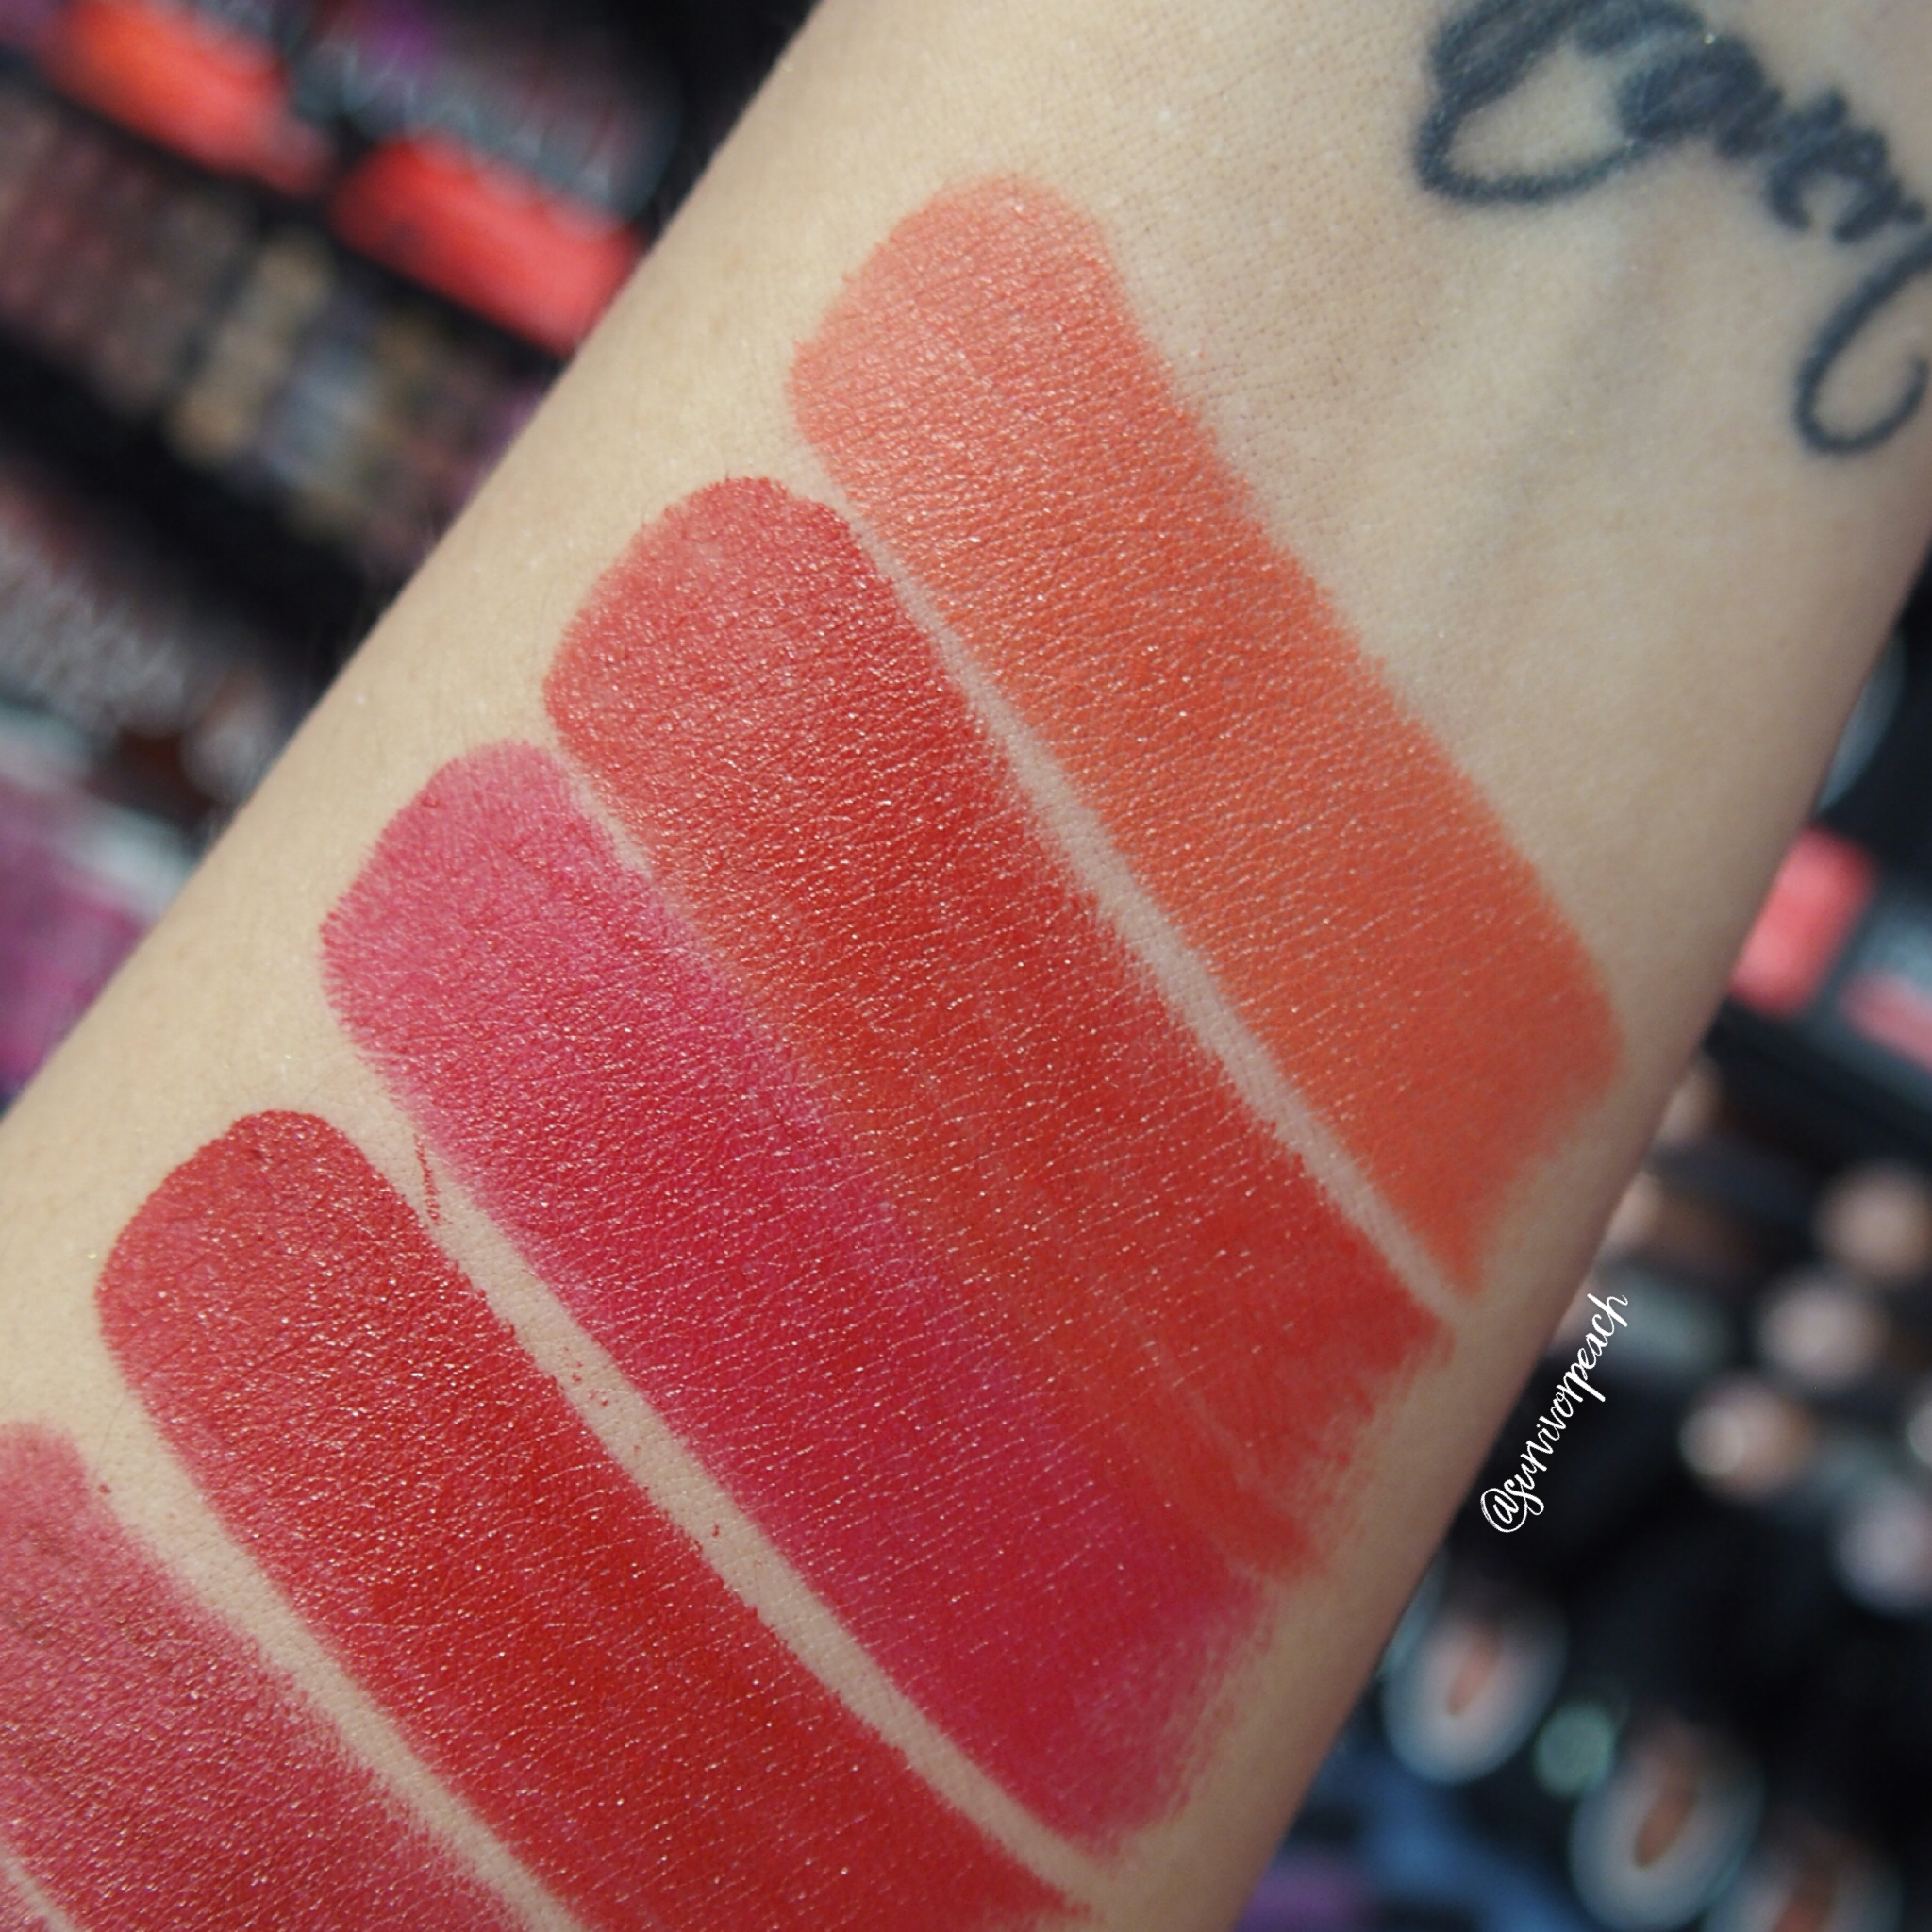 Sephora Collection Rouge Satin Lipstick swatches - S09 Playin' Around, S10 What's Up?, S11 Night Call, S12 On My Way